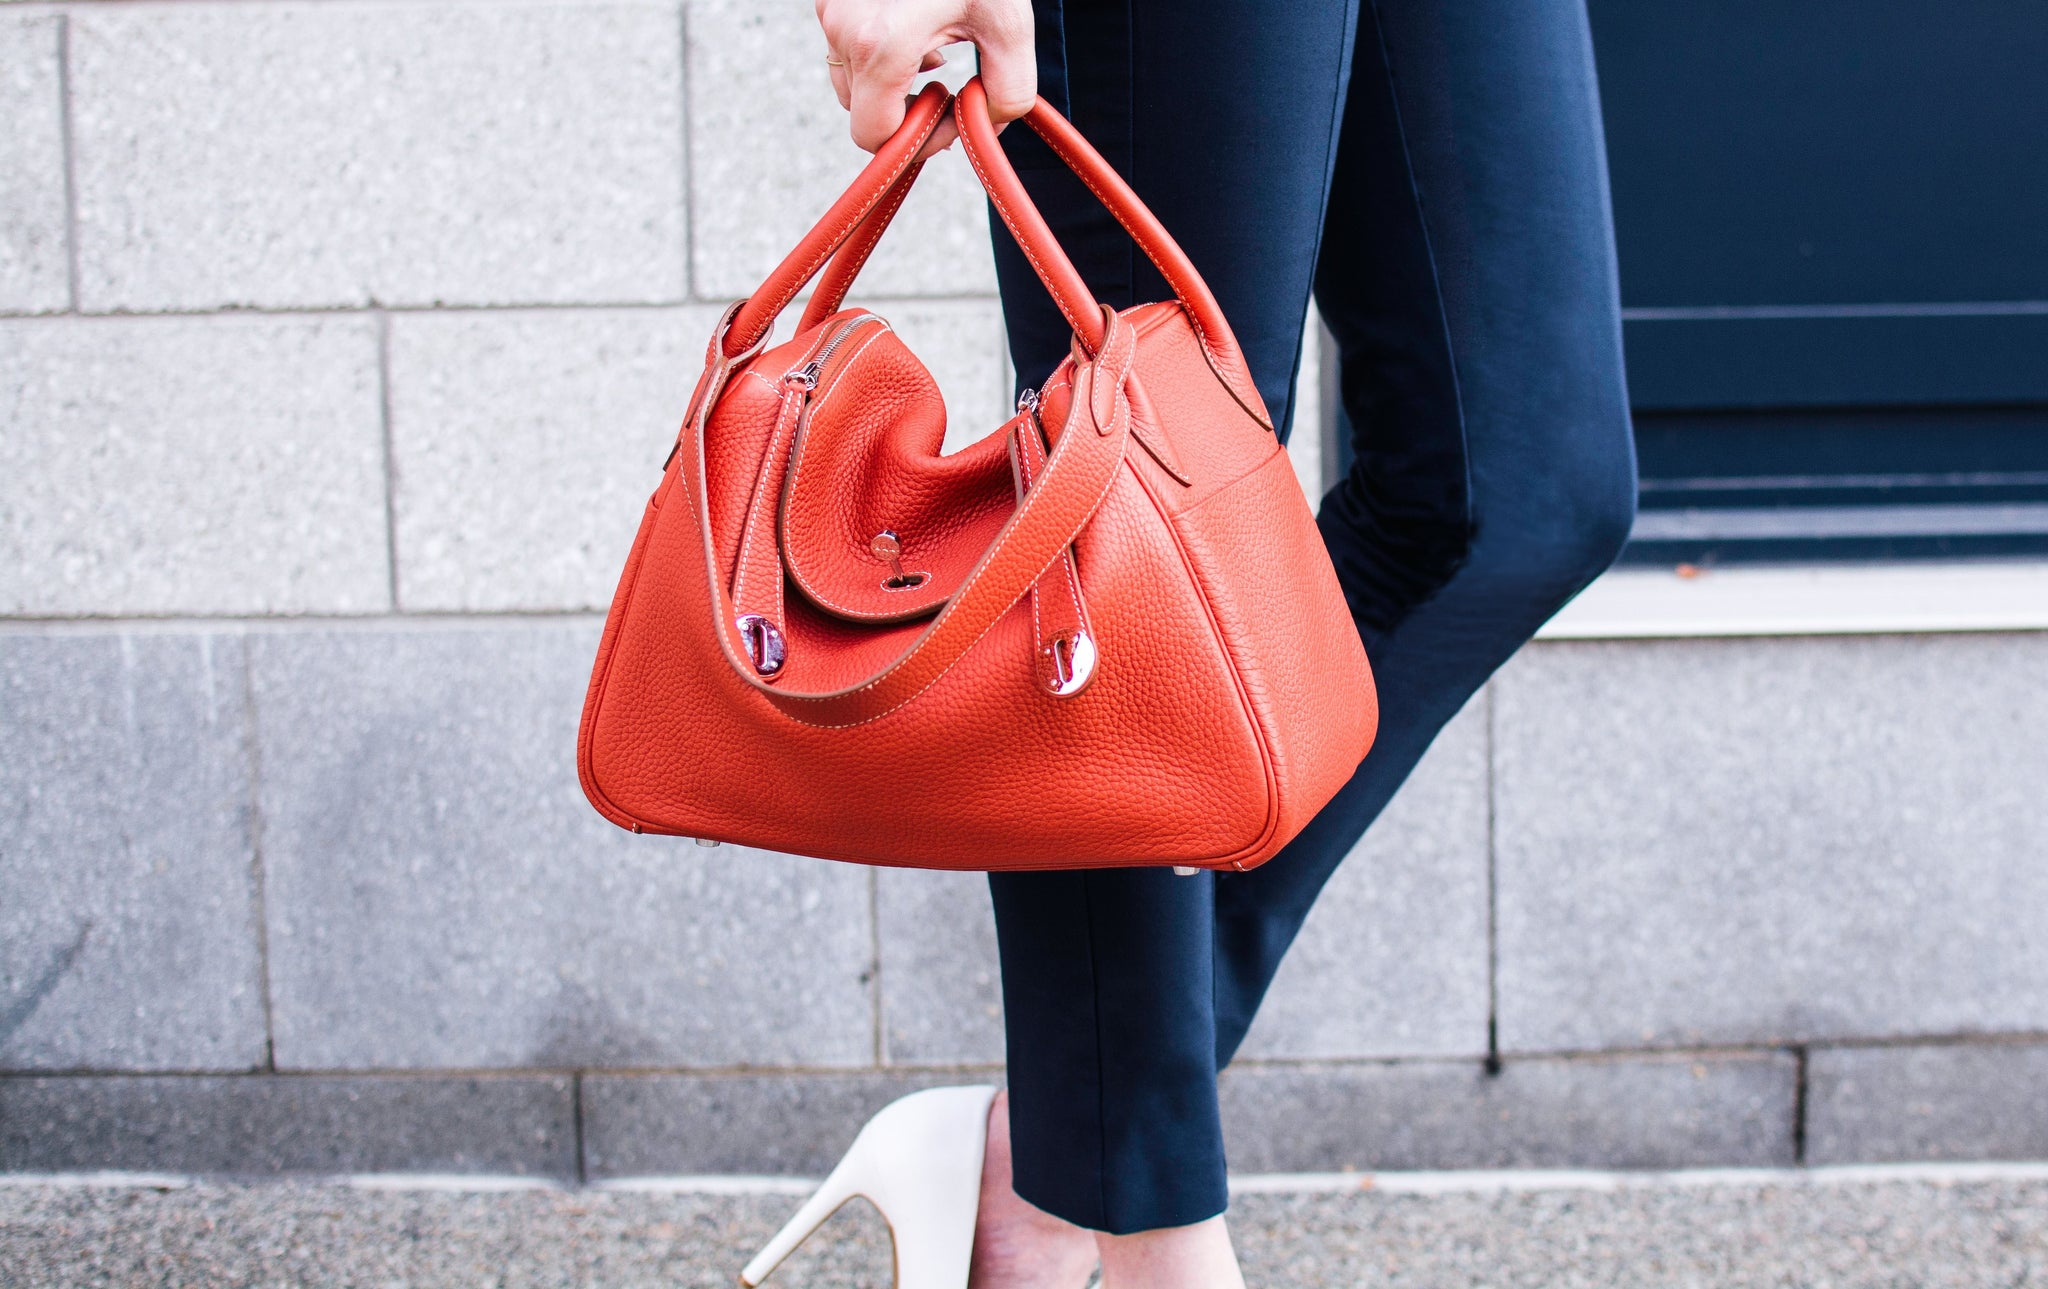 Authenticating Hermes handbags